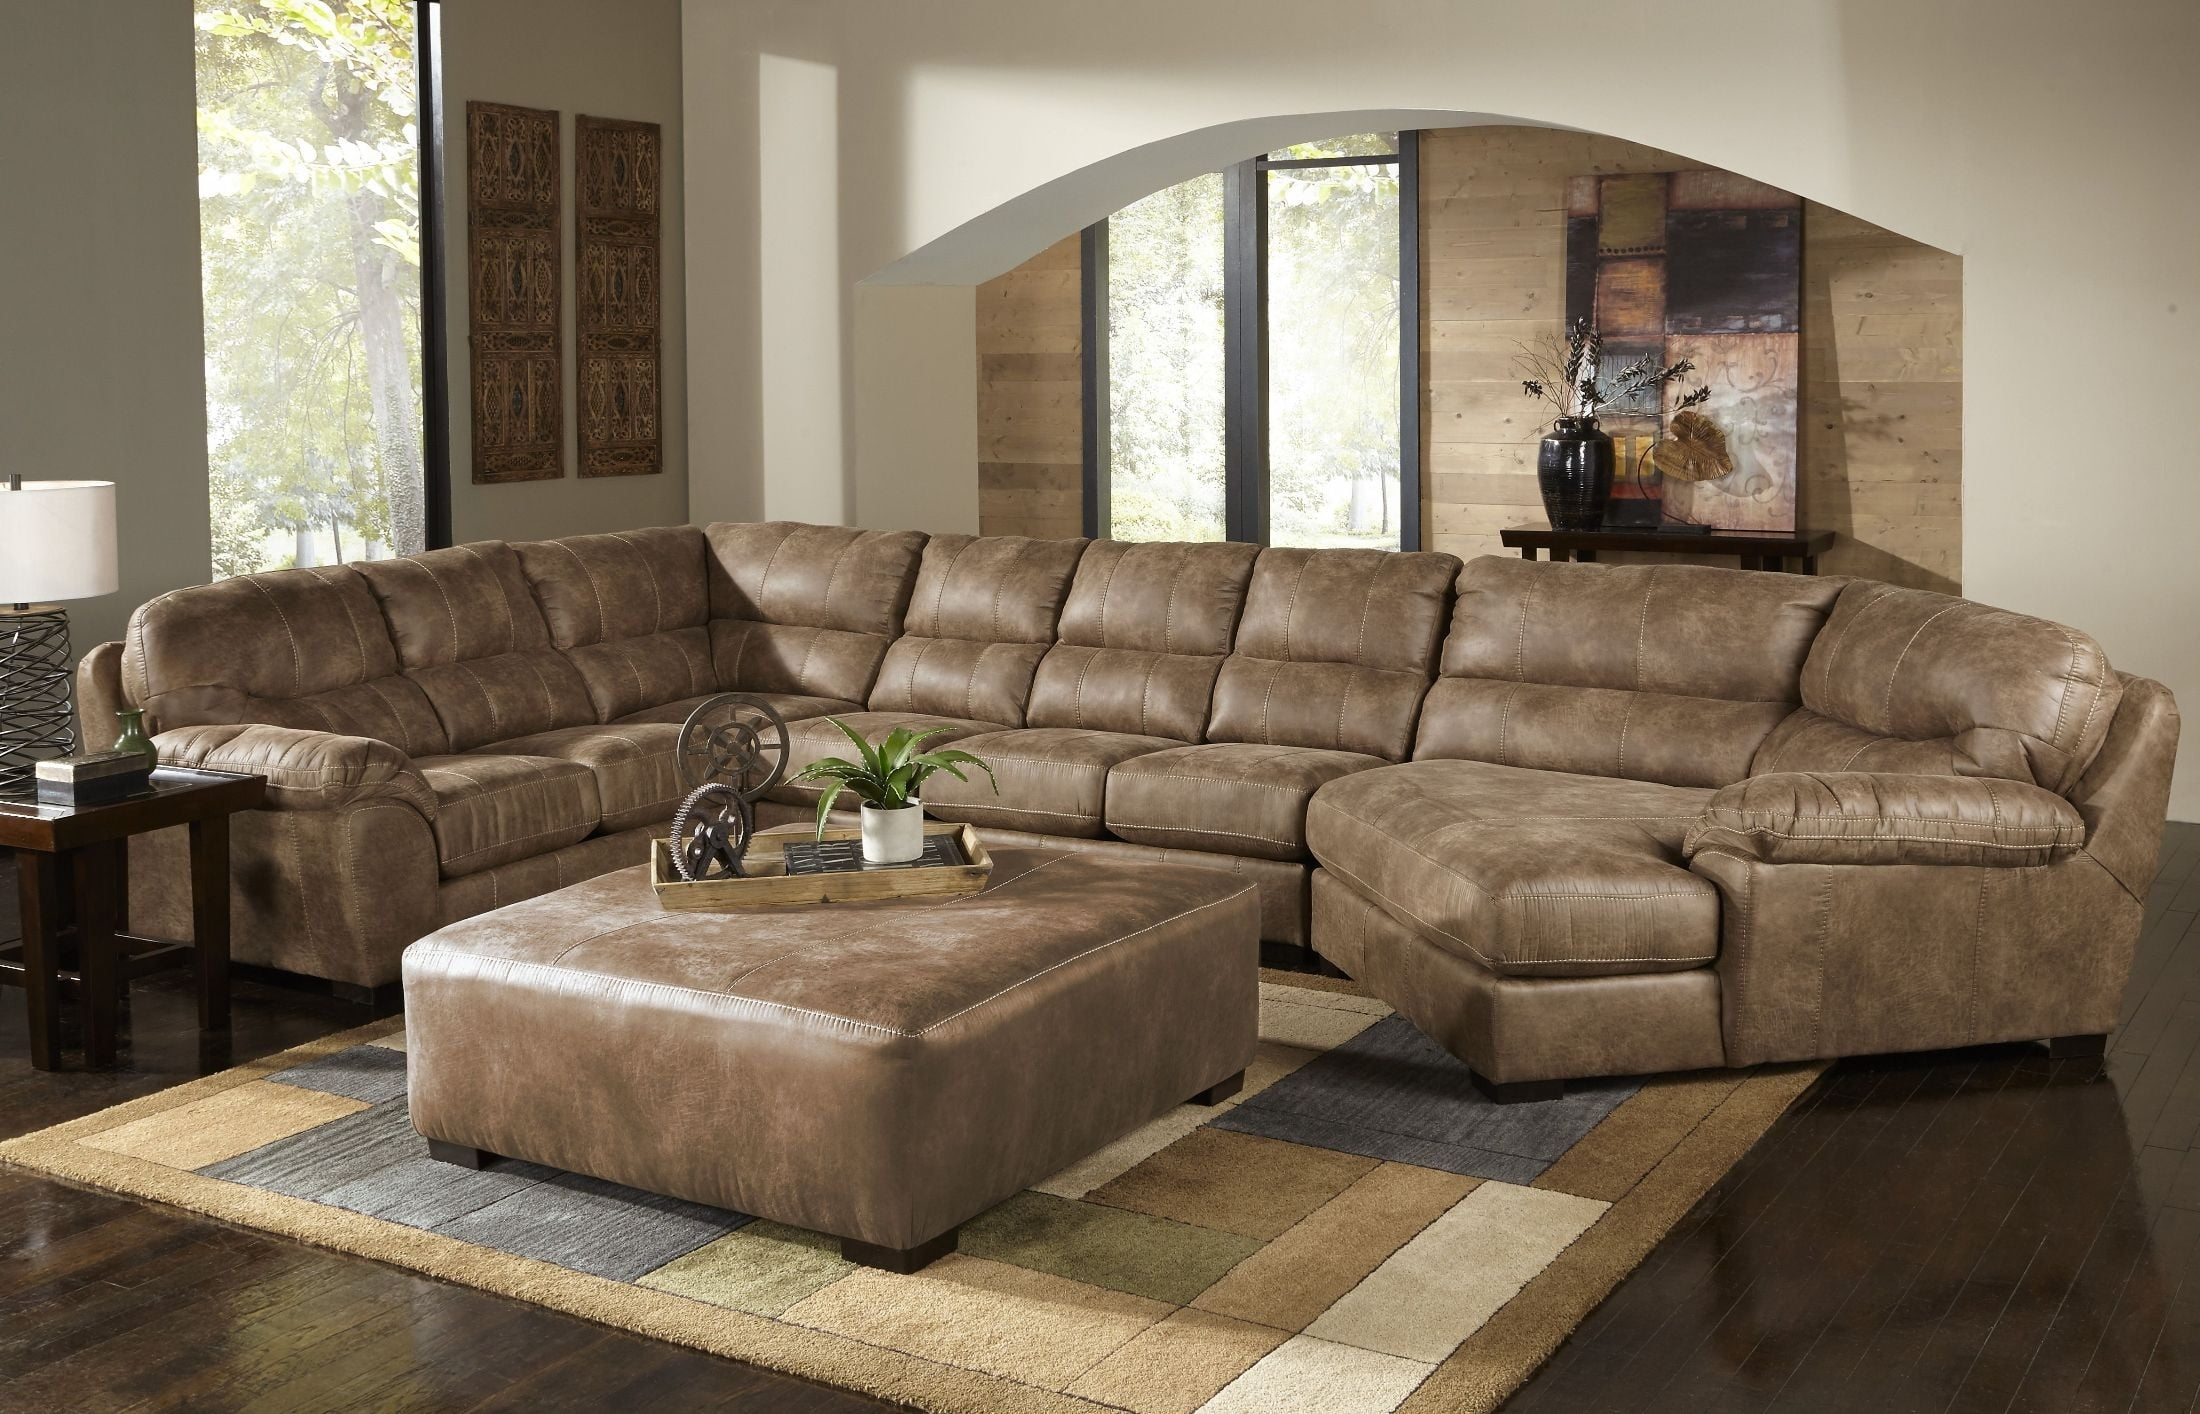 Grant Silt Laf Chaise Sectional, 4453-75-122749302749, Jackson for Avery 2 Piece Sectionals With Raf Armless Chaise (Image 15 of 30)